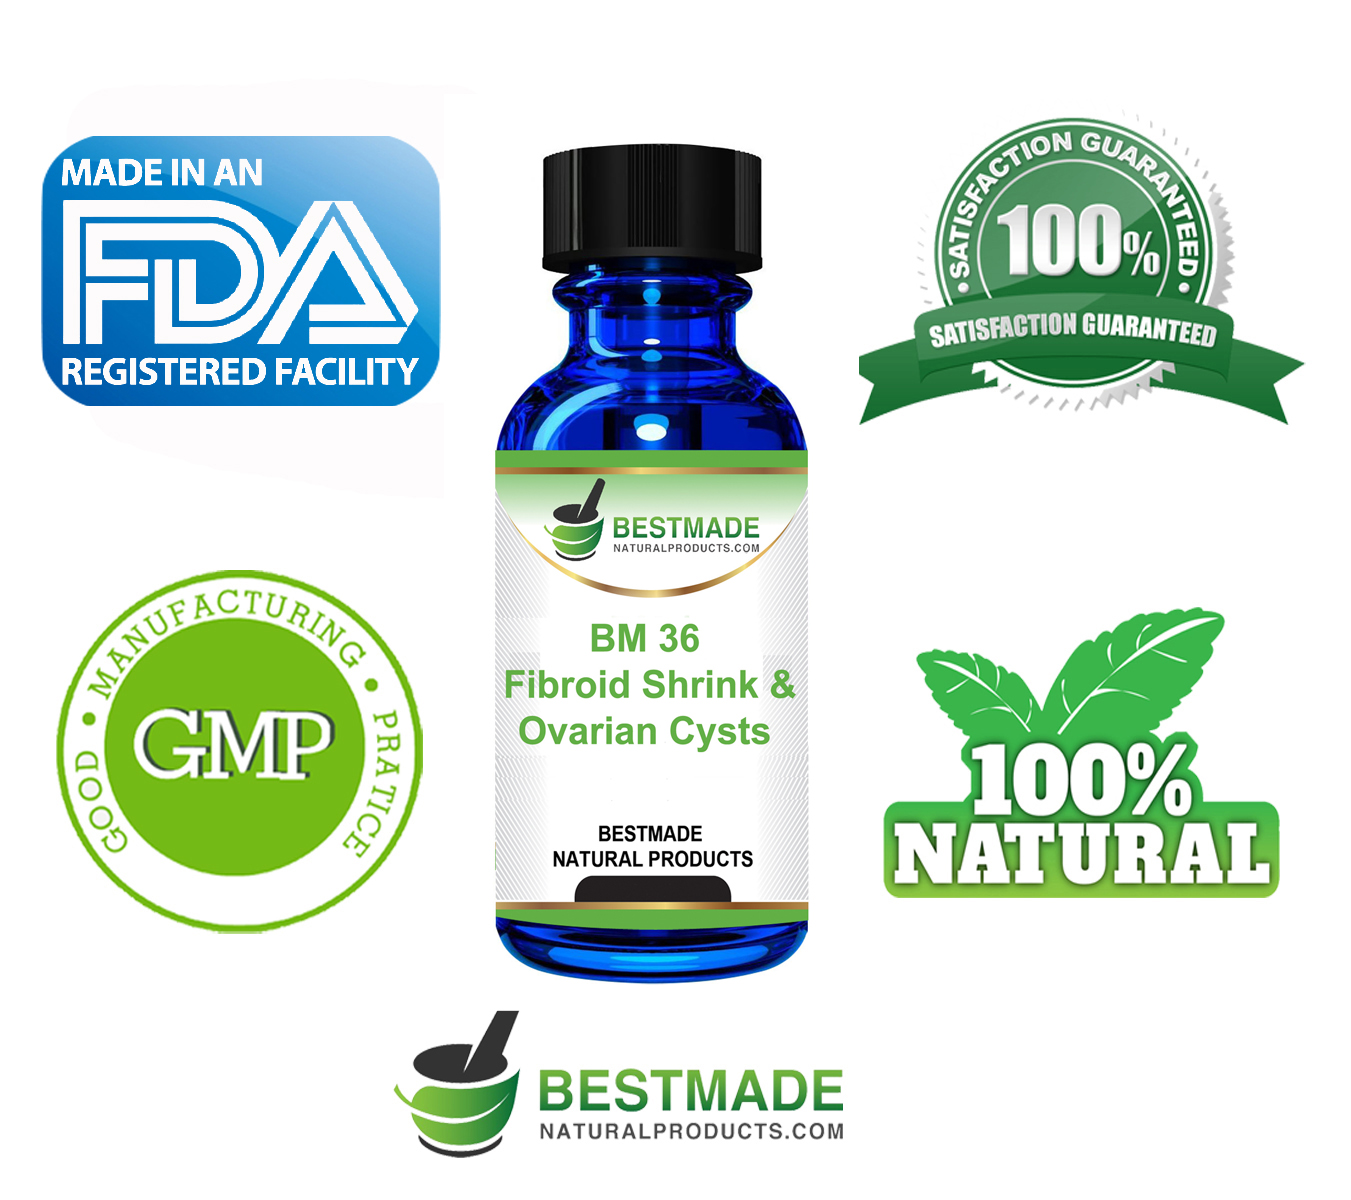 Fibroid shrink & Ovarian Cysts Natural Remedy (BM36) by BestMade -  Naturally Potent Remedy Shrinks Fibroid & Cysts - Relieves Painful Frequent